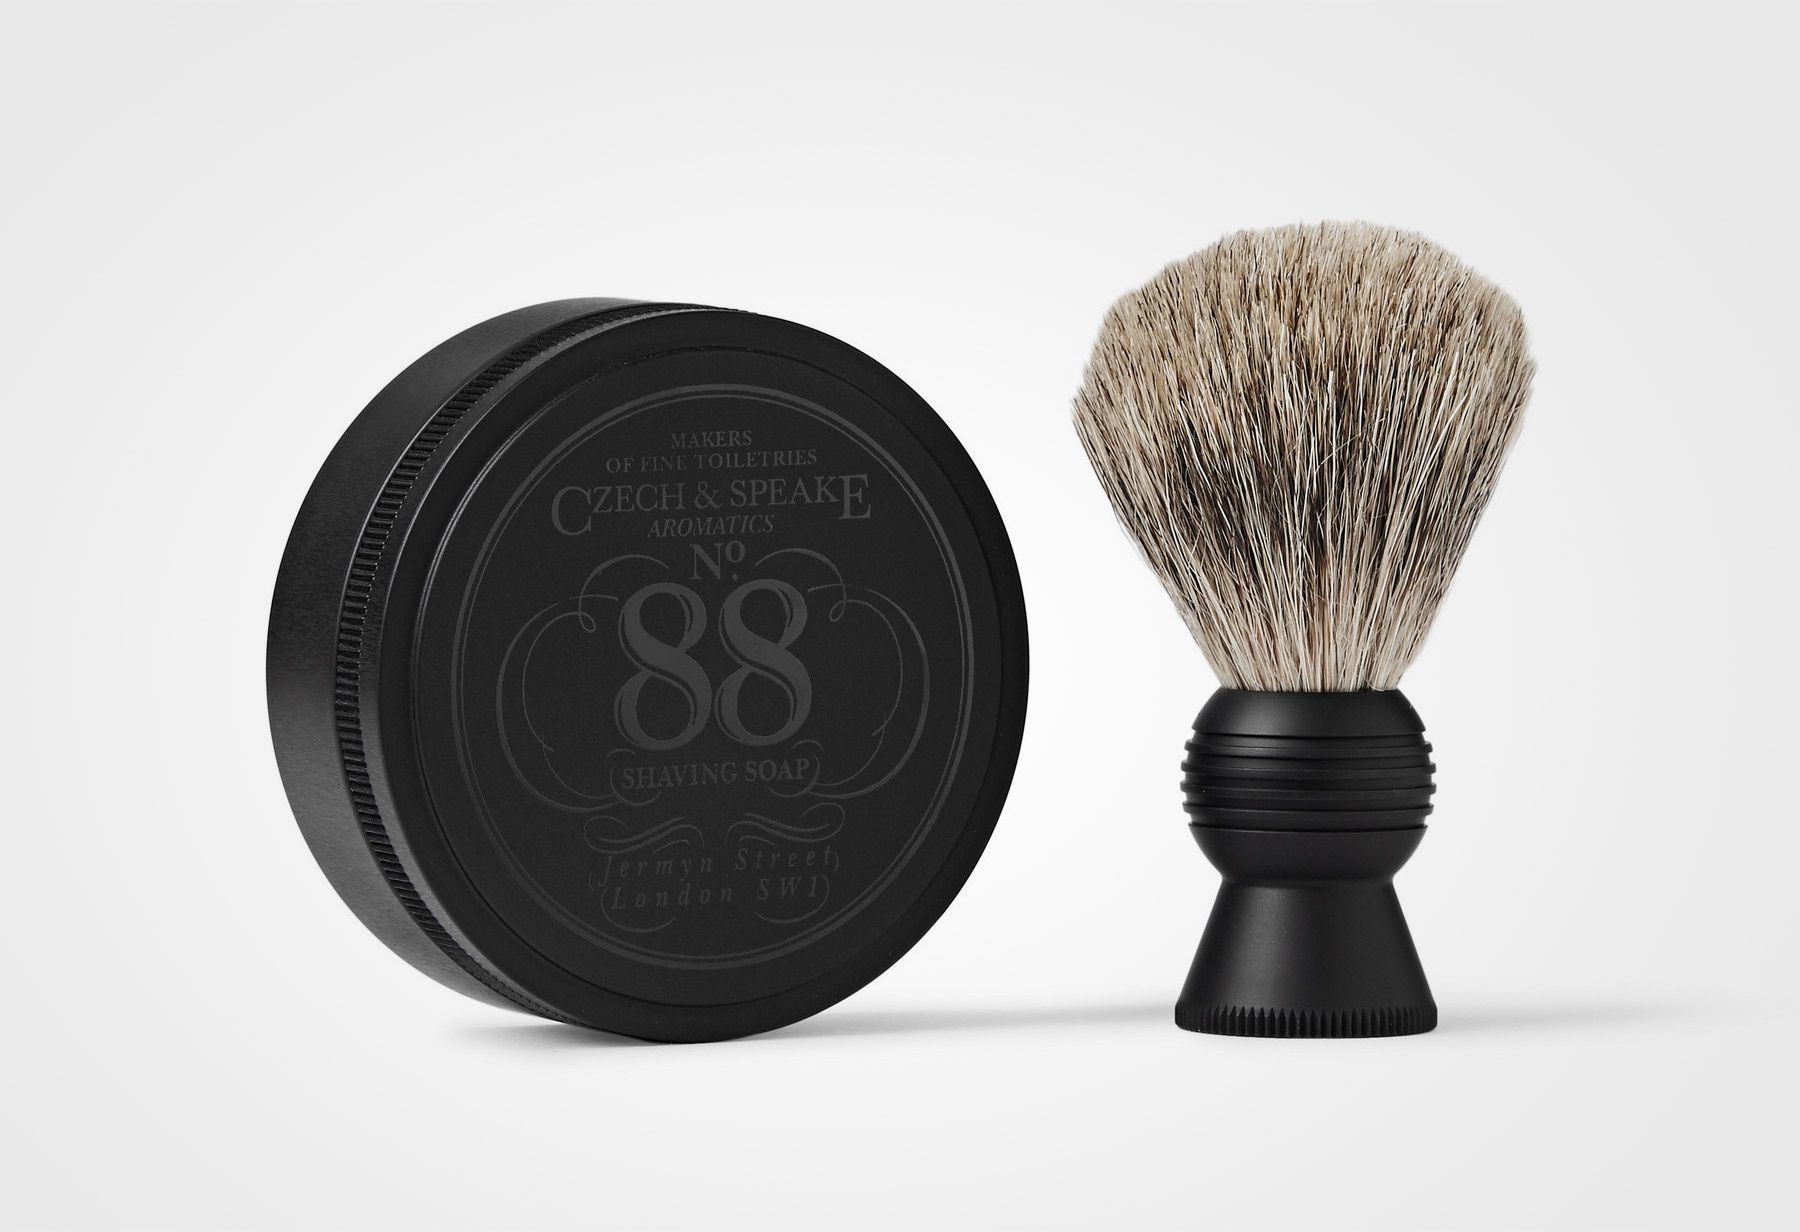 czech speake no 88 shaving soap recenzja myd a do. Black Bedroom Furniture Sets. Home Design Ideas